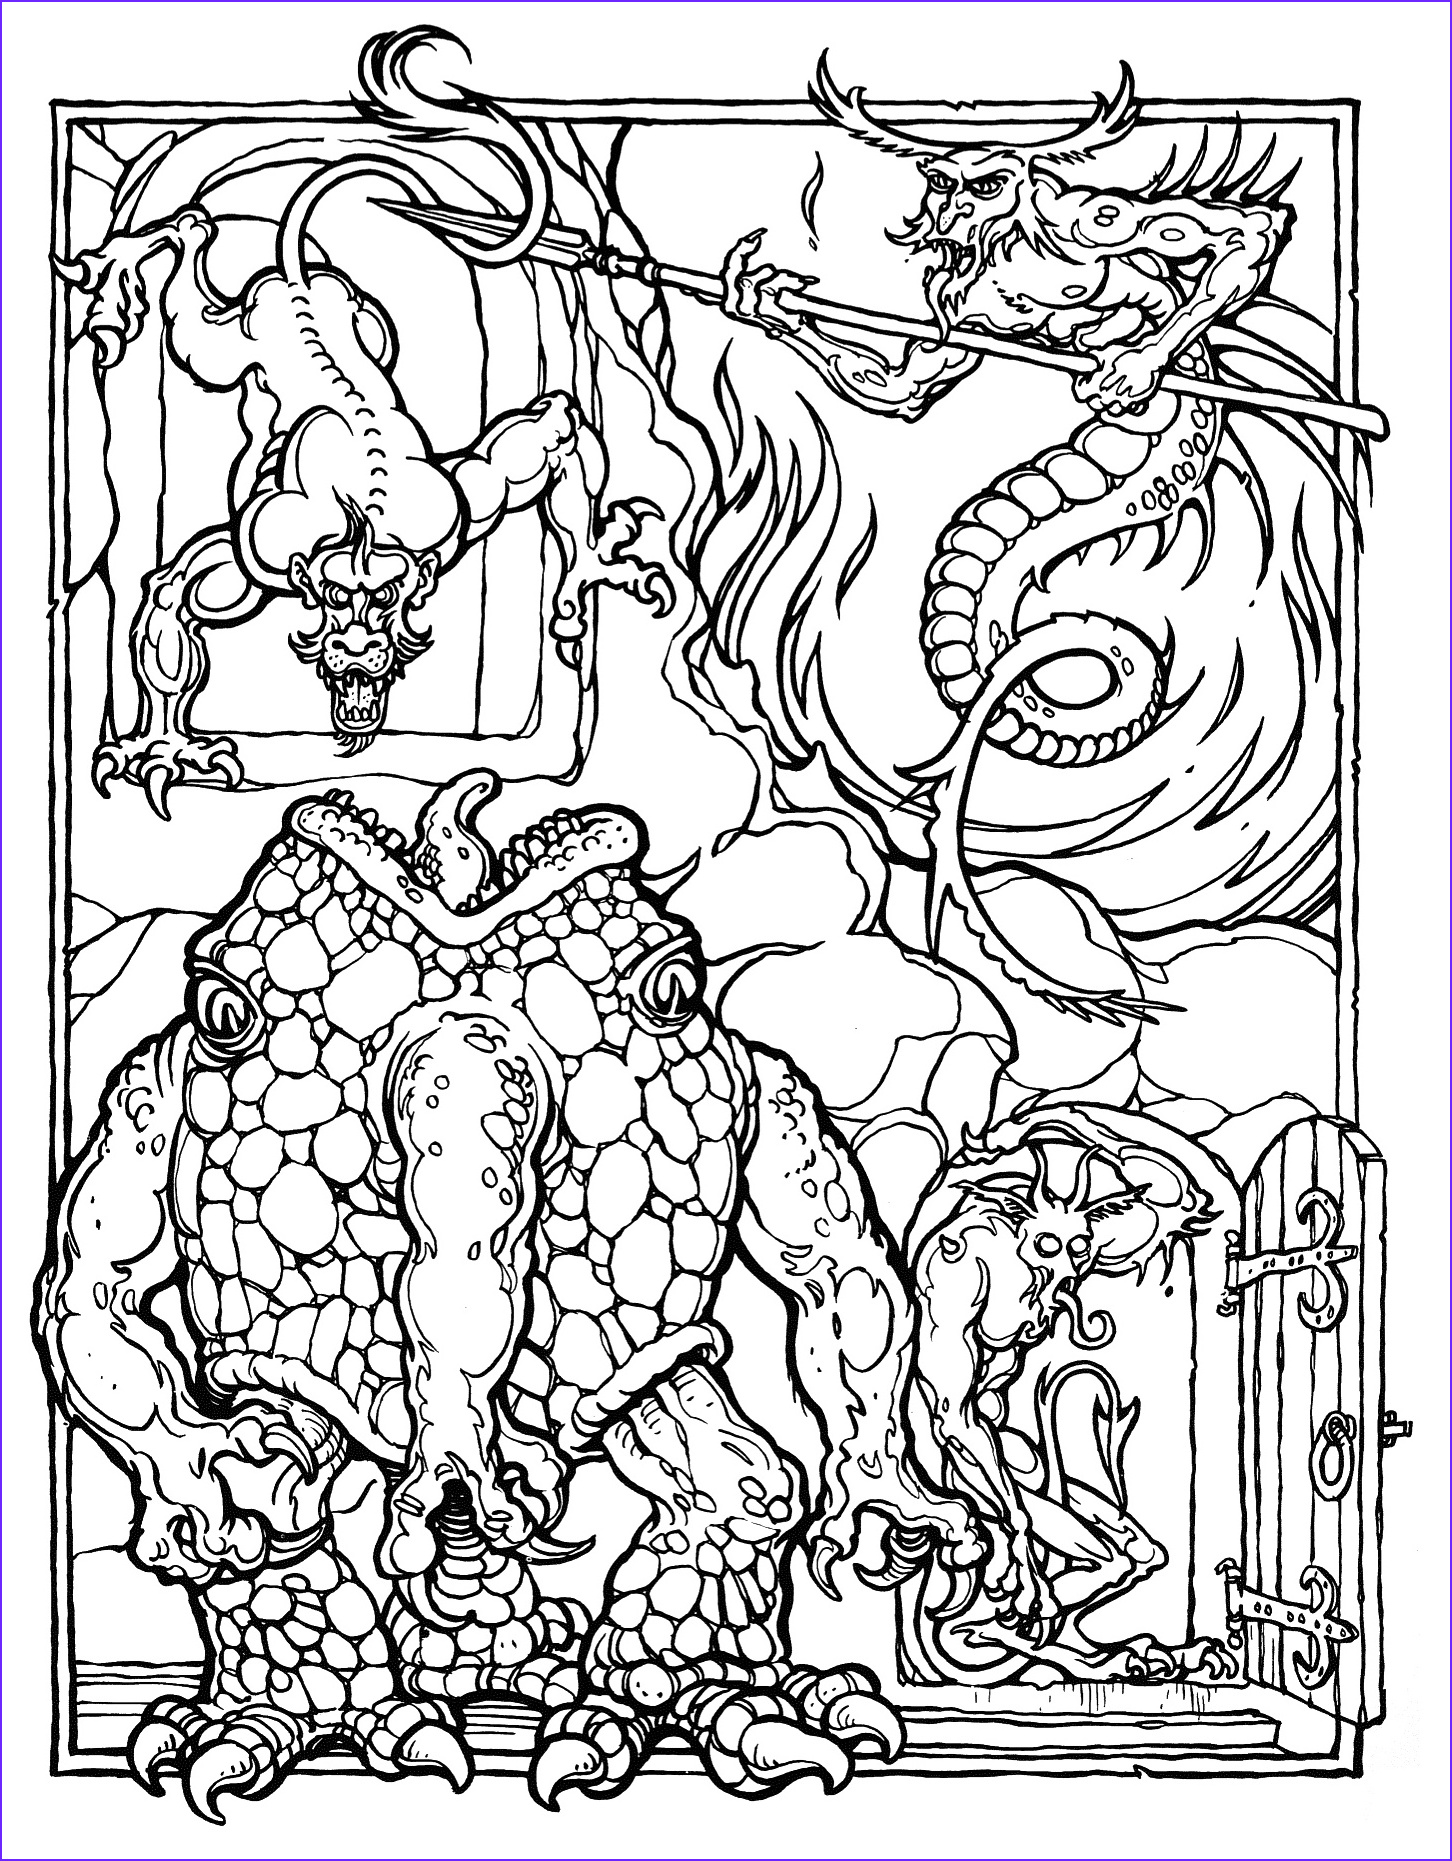 Dragons Coloring Book Beautiful Photos Monster Brains the Ficial Advanced Dungeons and Dragons